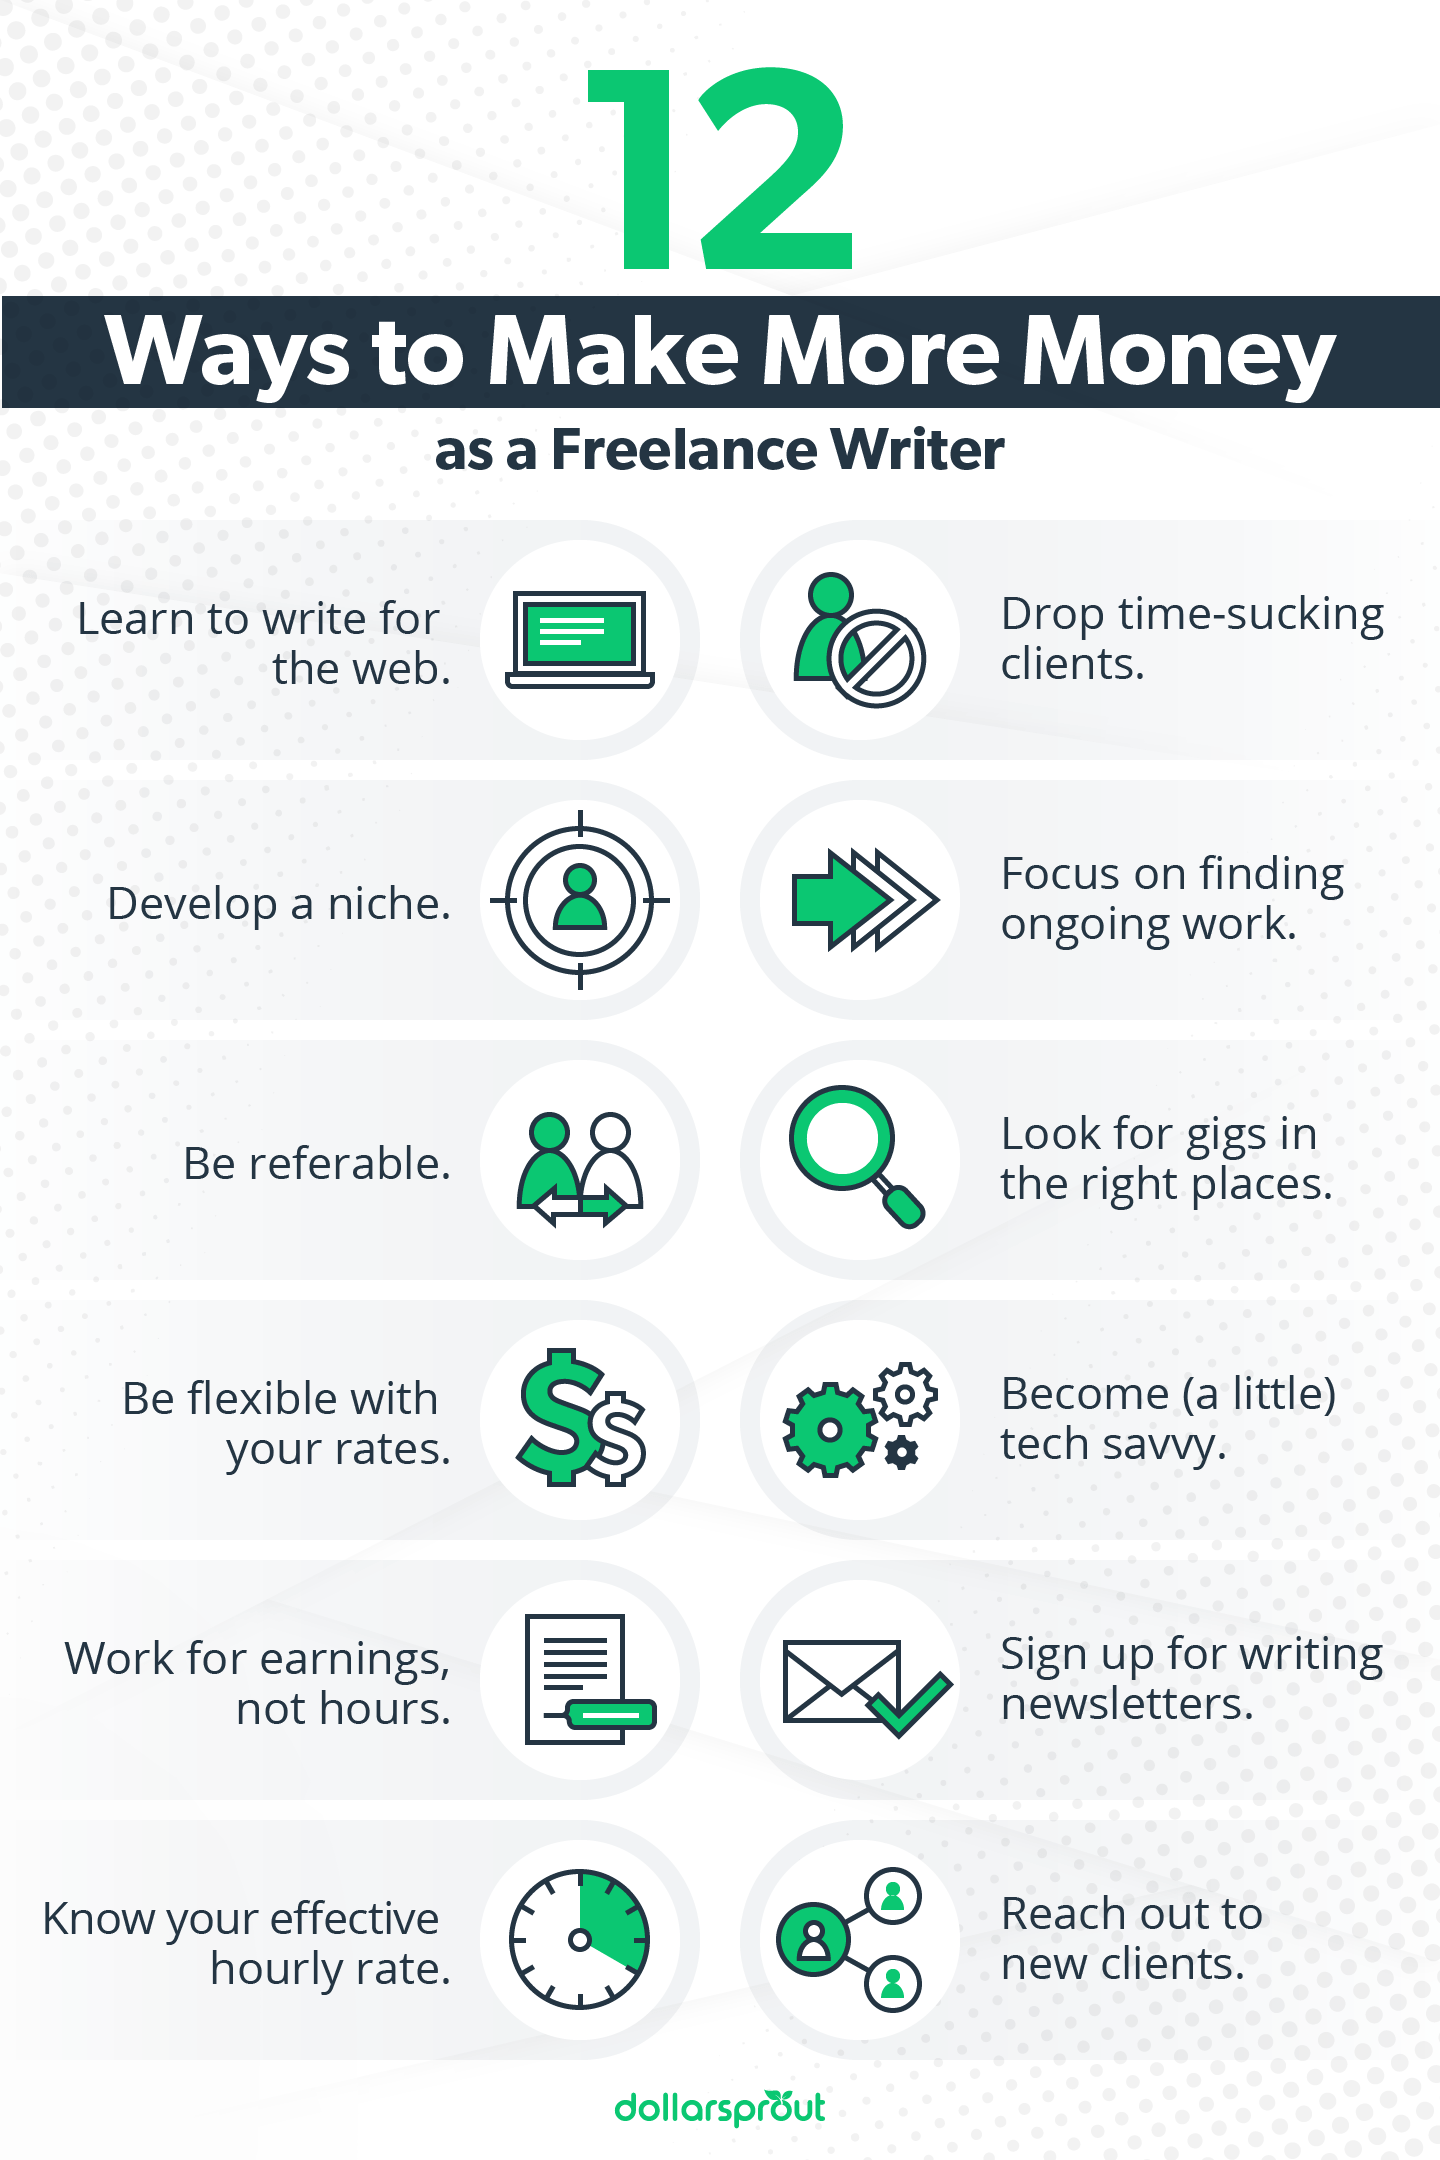 12 Ways to Make More Money as a Freelance Writer